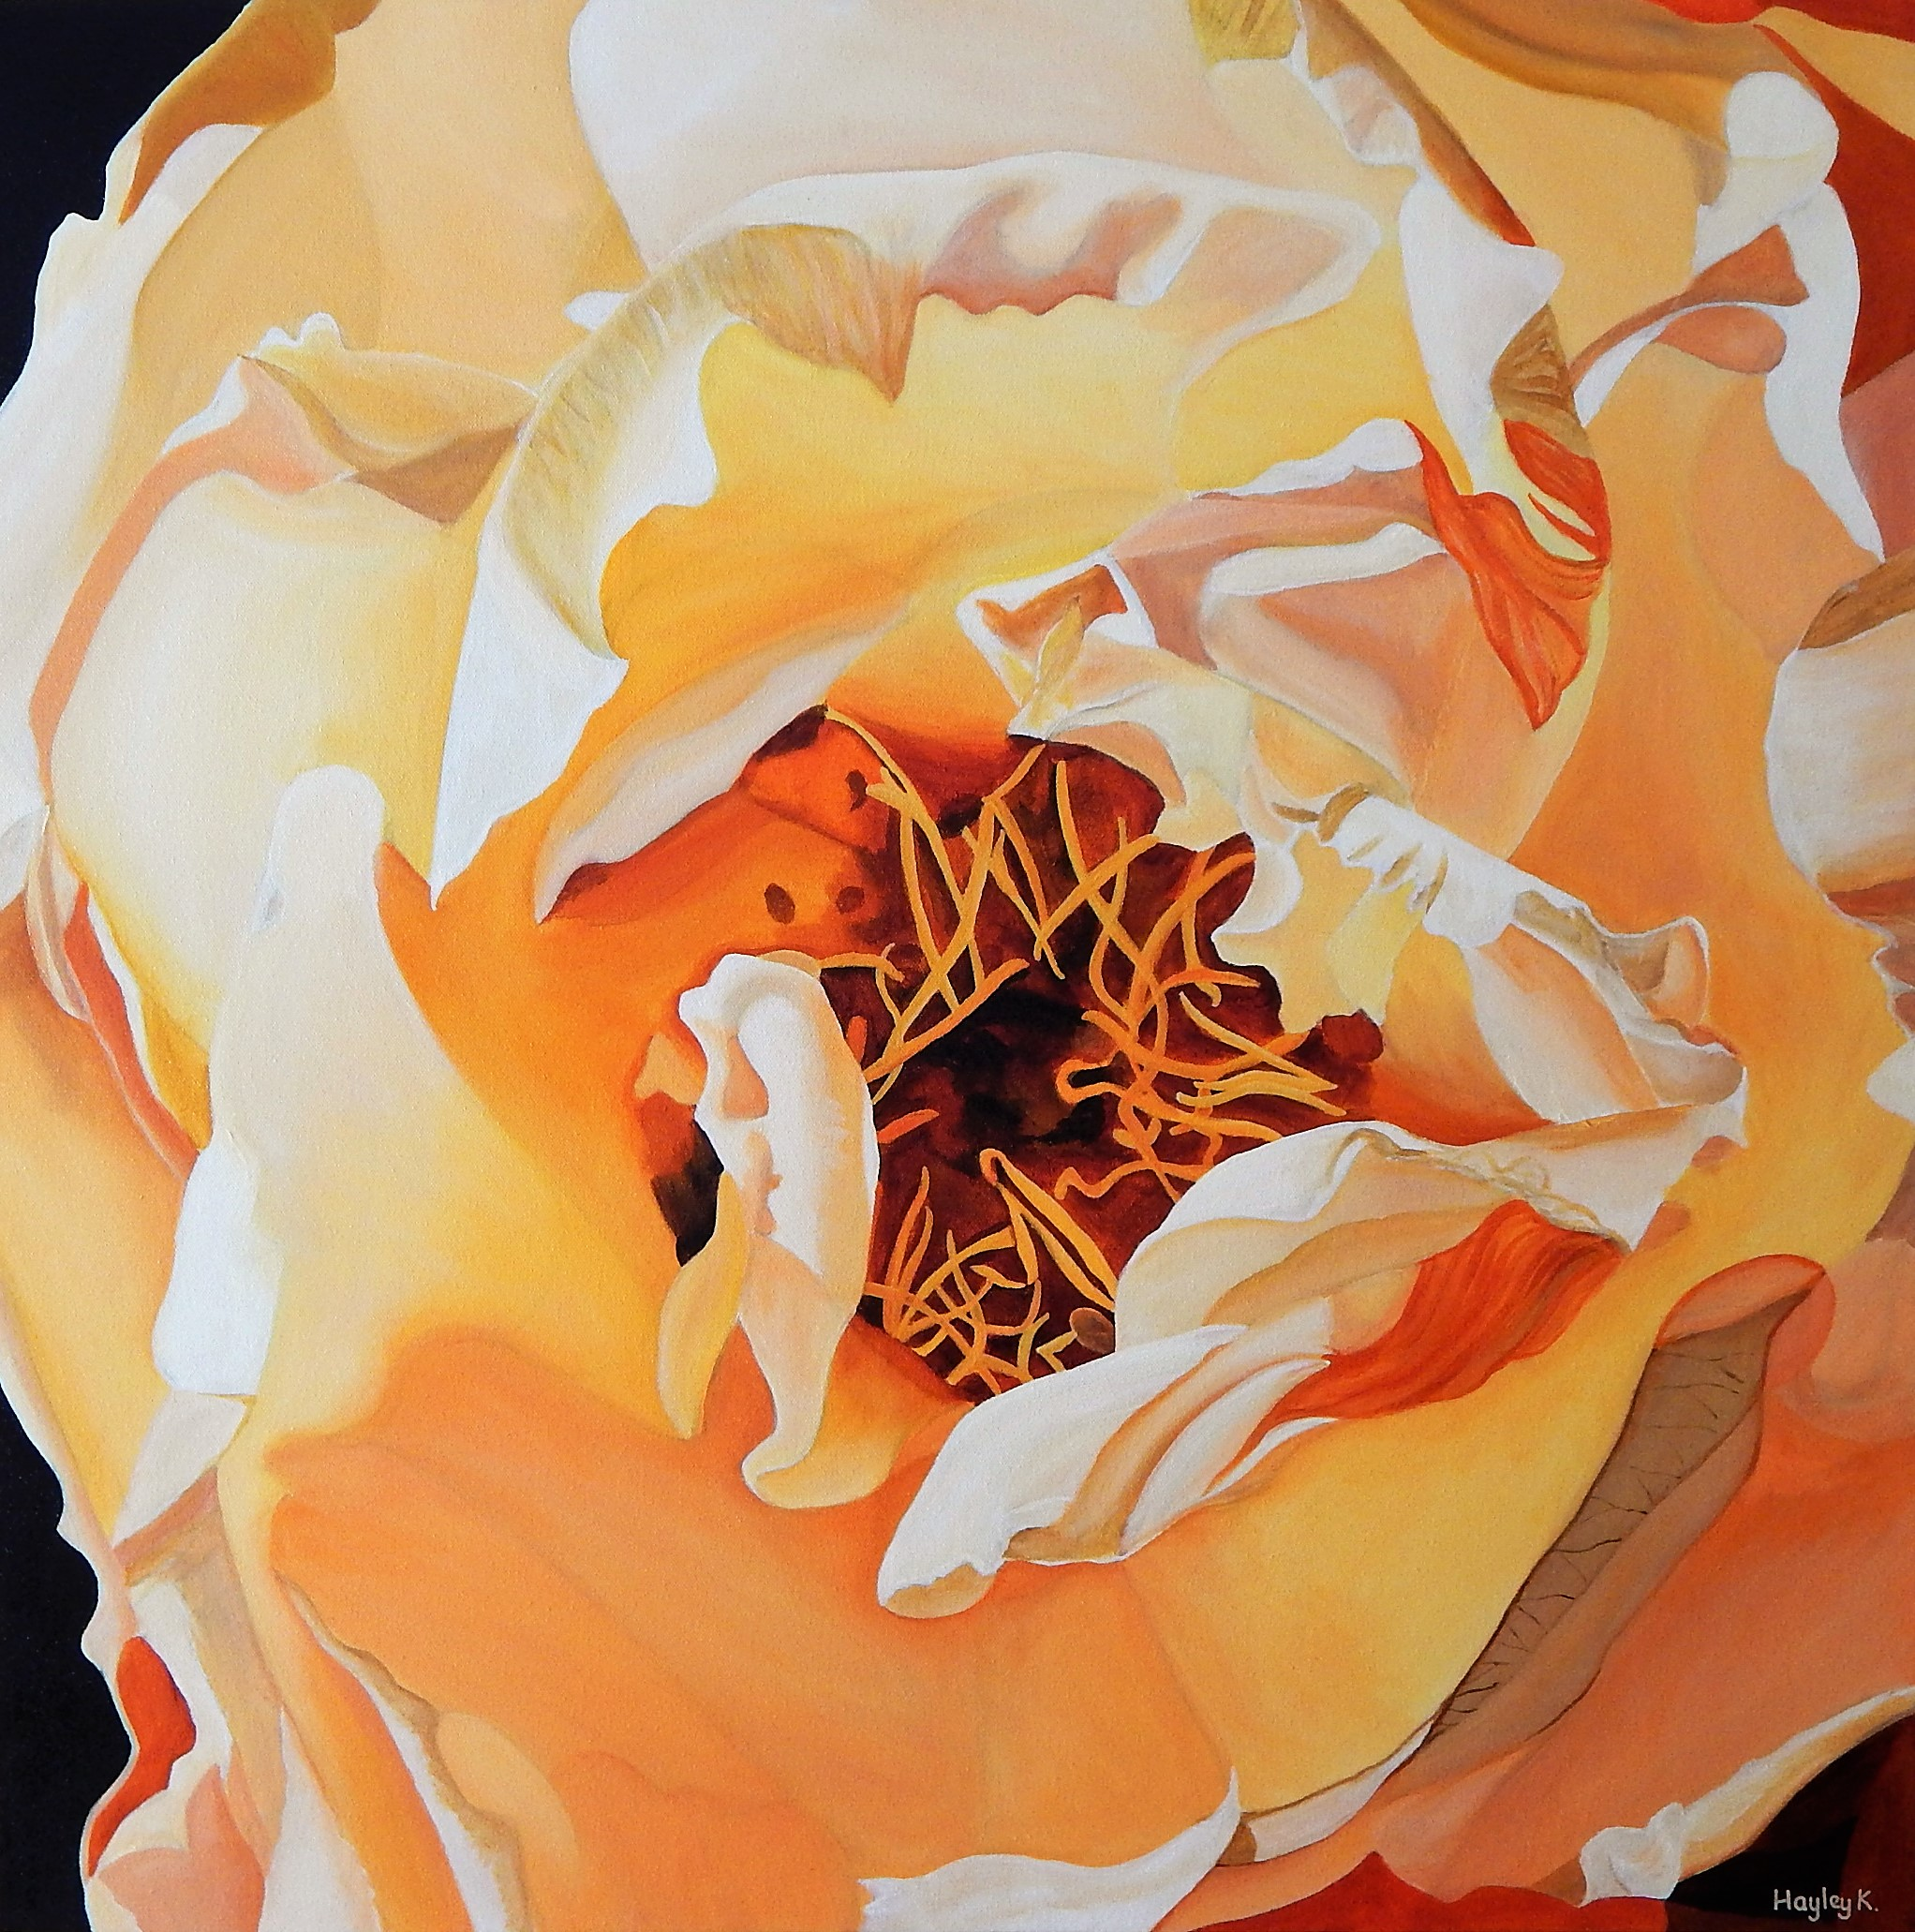 Transcendence 76cm (W) x 76cm (H) $800  I love the ethereal feel of the afternoon sun dancing on the petals of this apricot rose. It has a dreamy quality, like satin sheets glowing in candlelight.